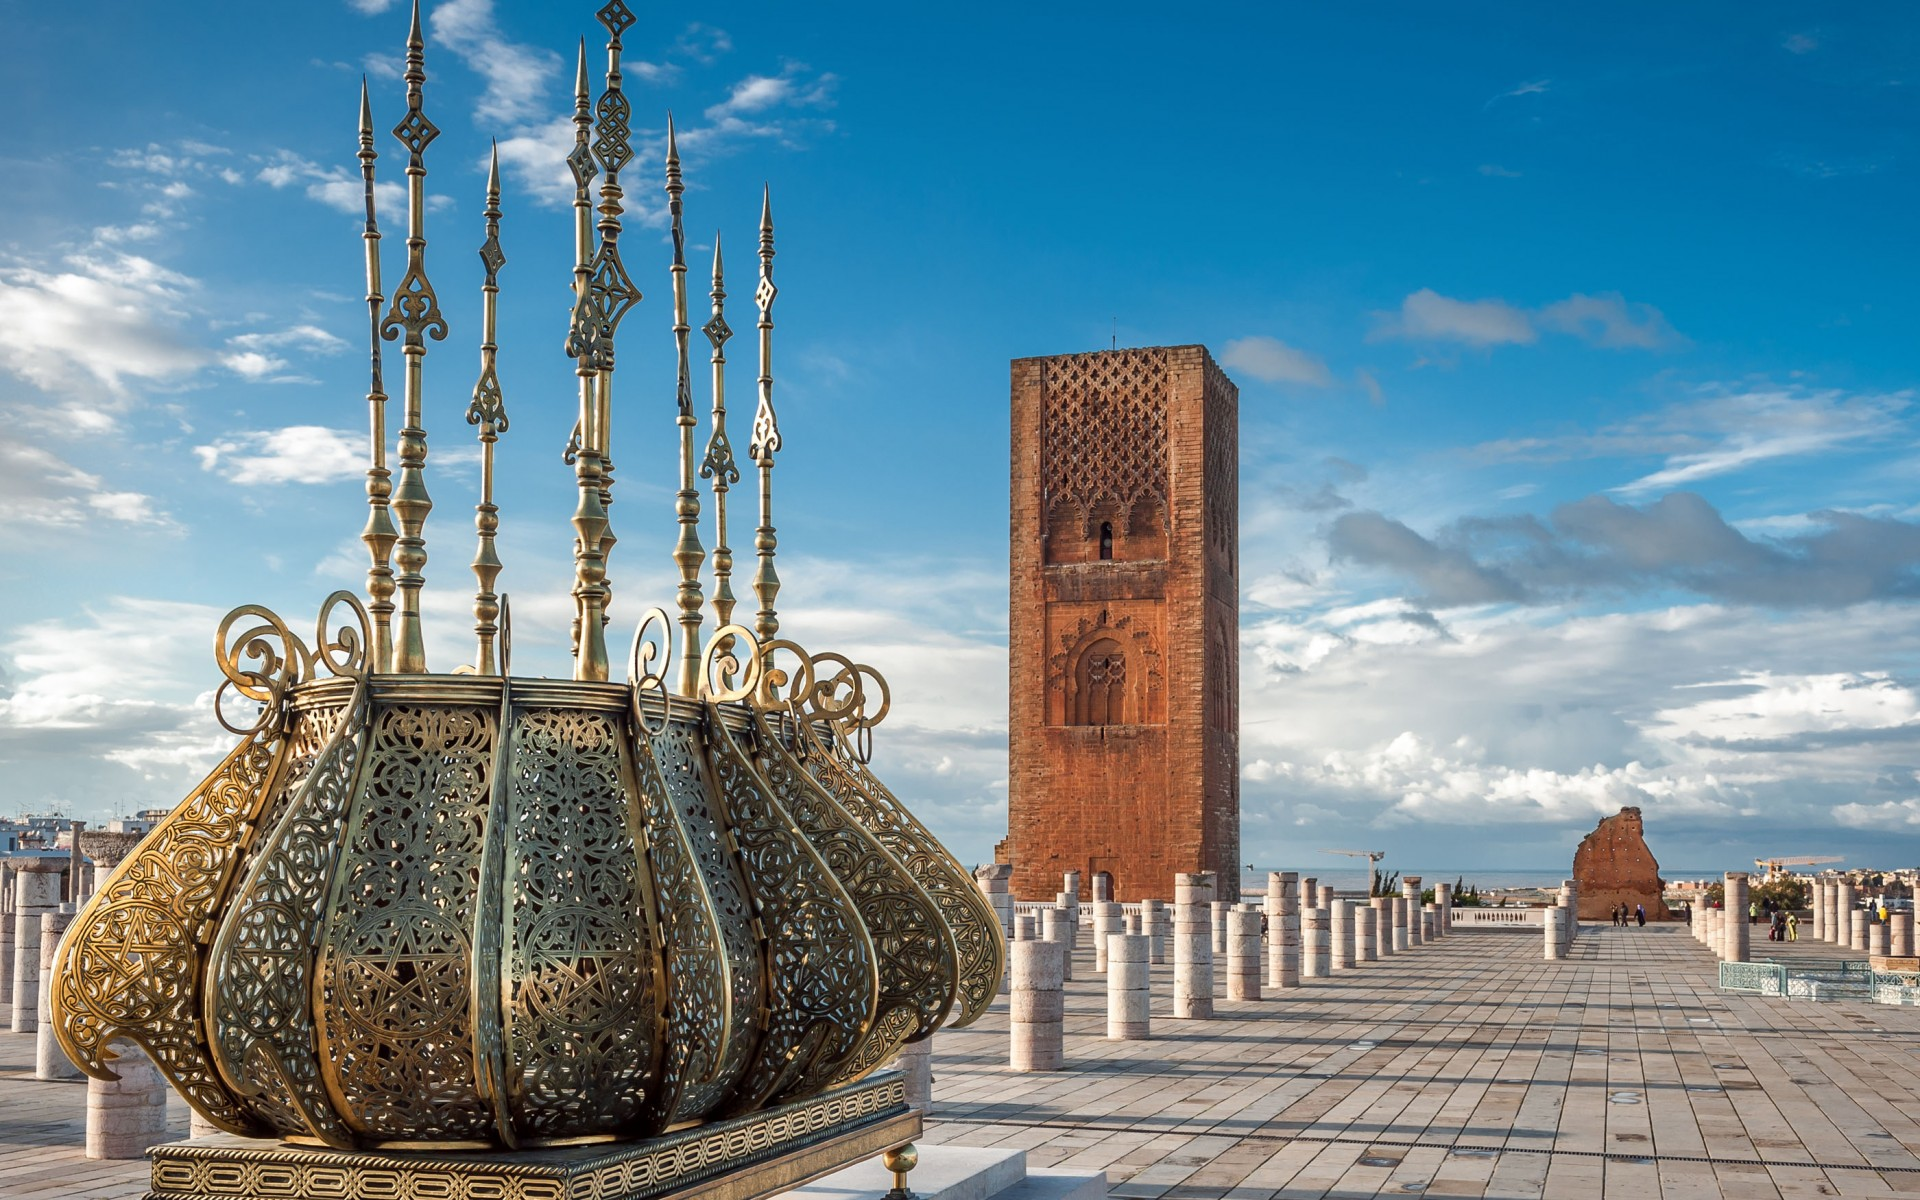 Morocco wallpapers best wallpapers for Top pictures of the day